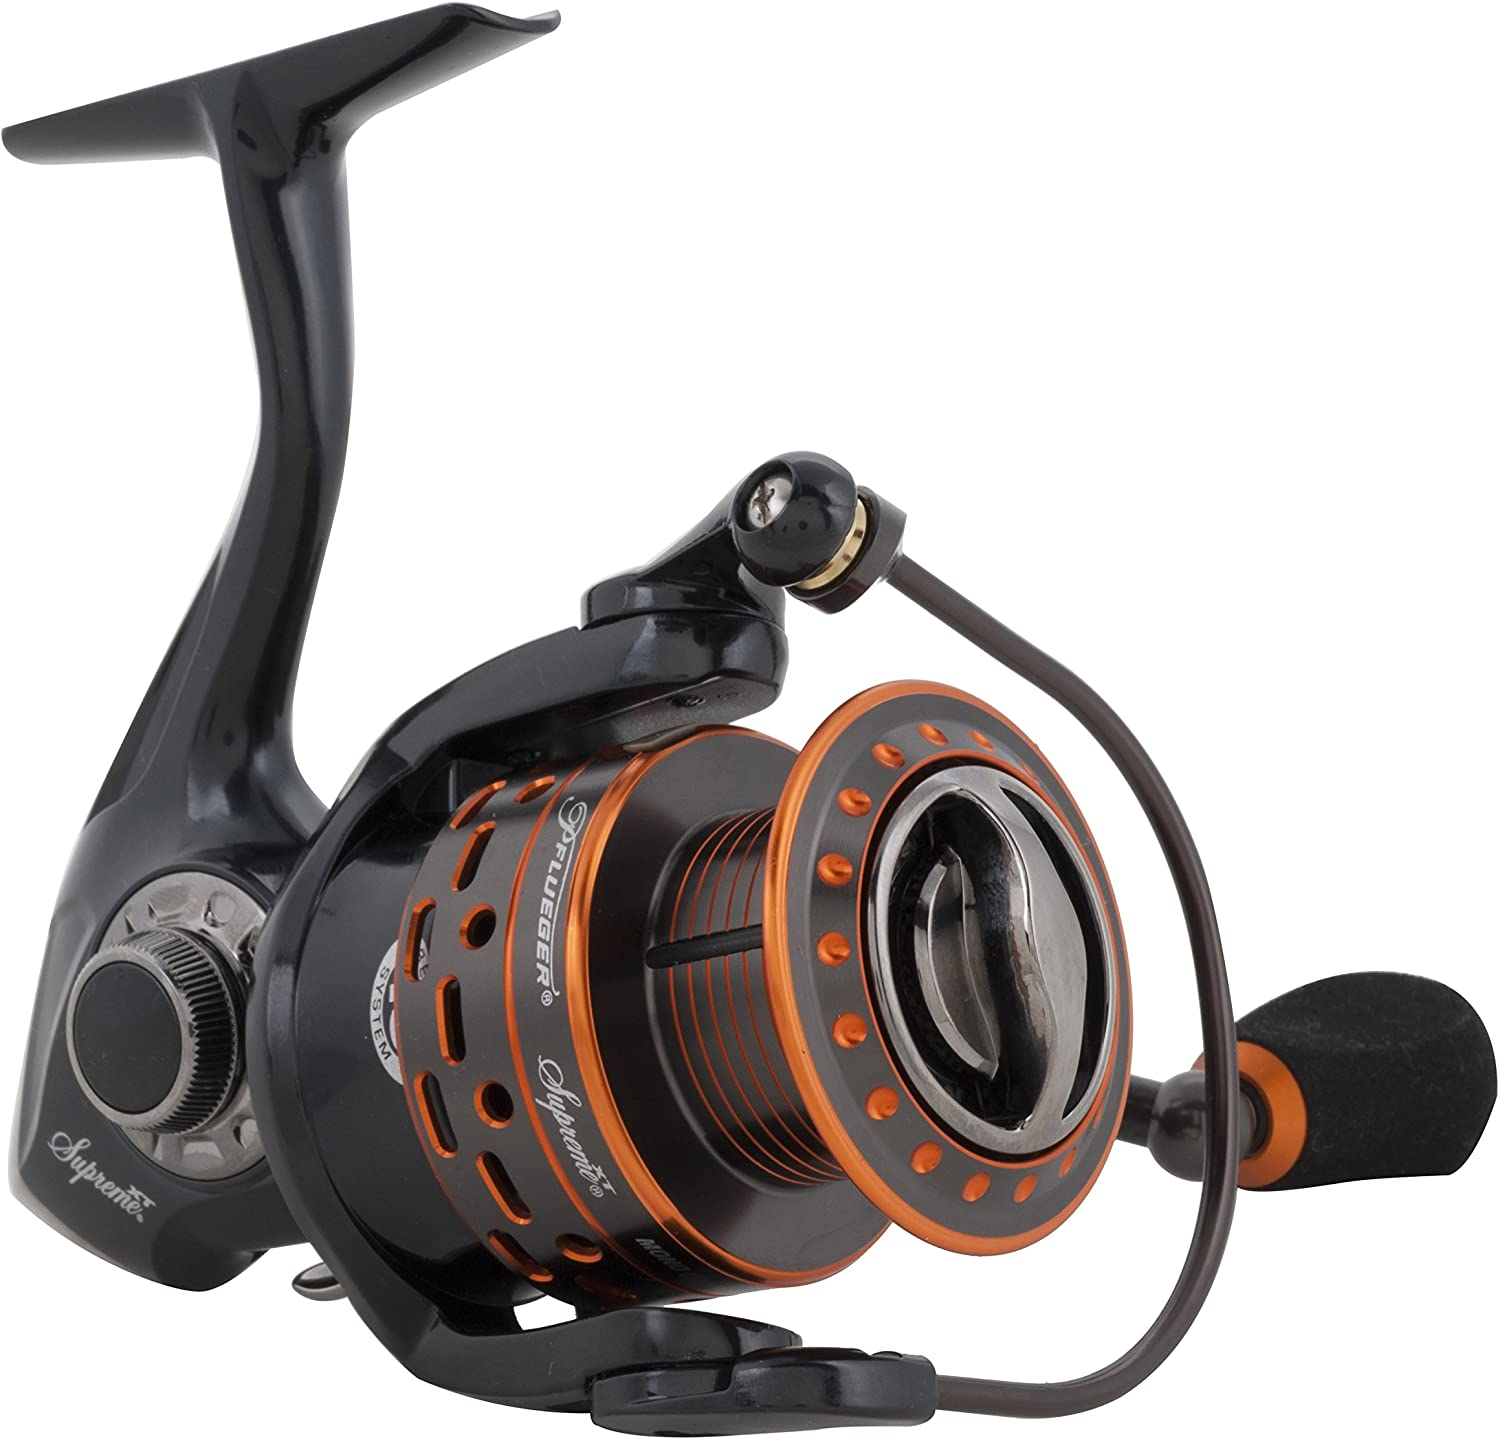 The Pflueger Supreme XT Reel